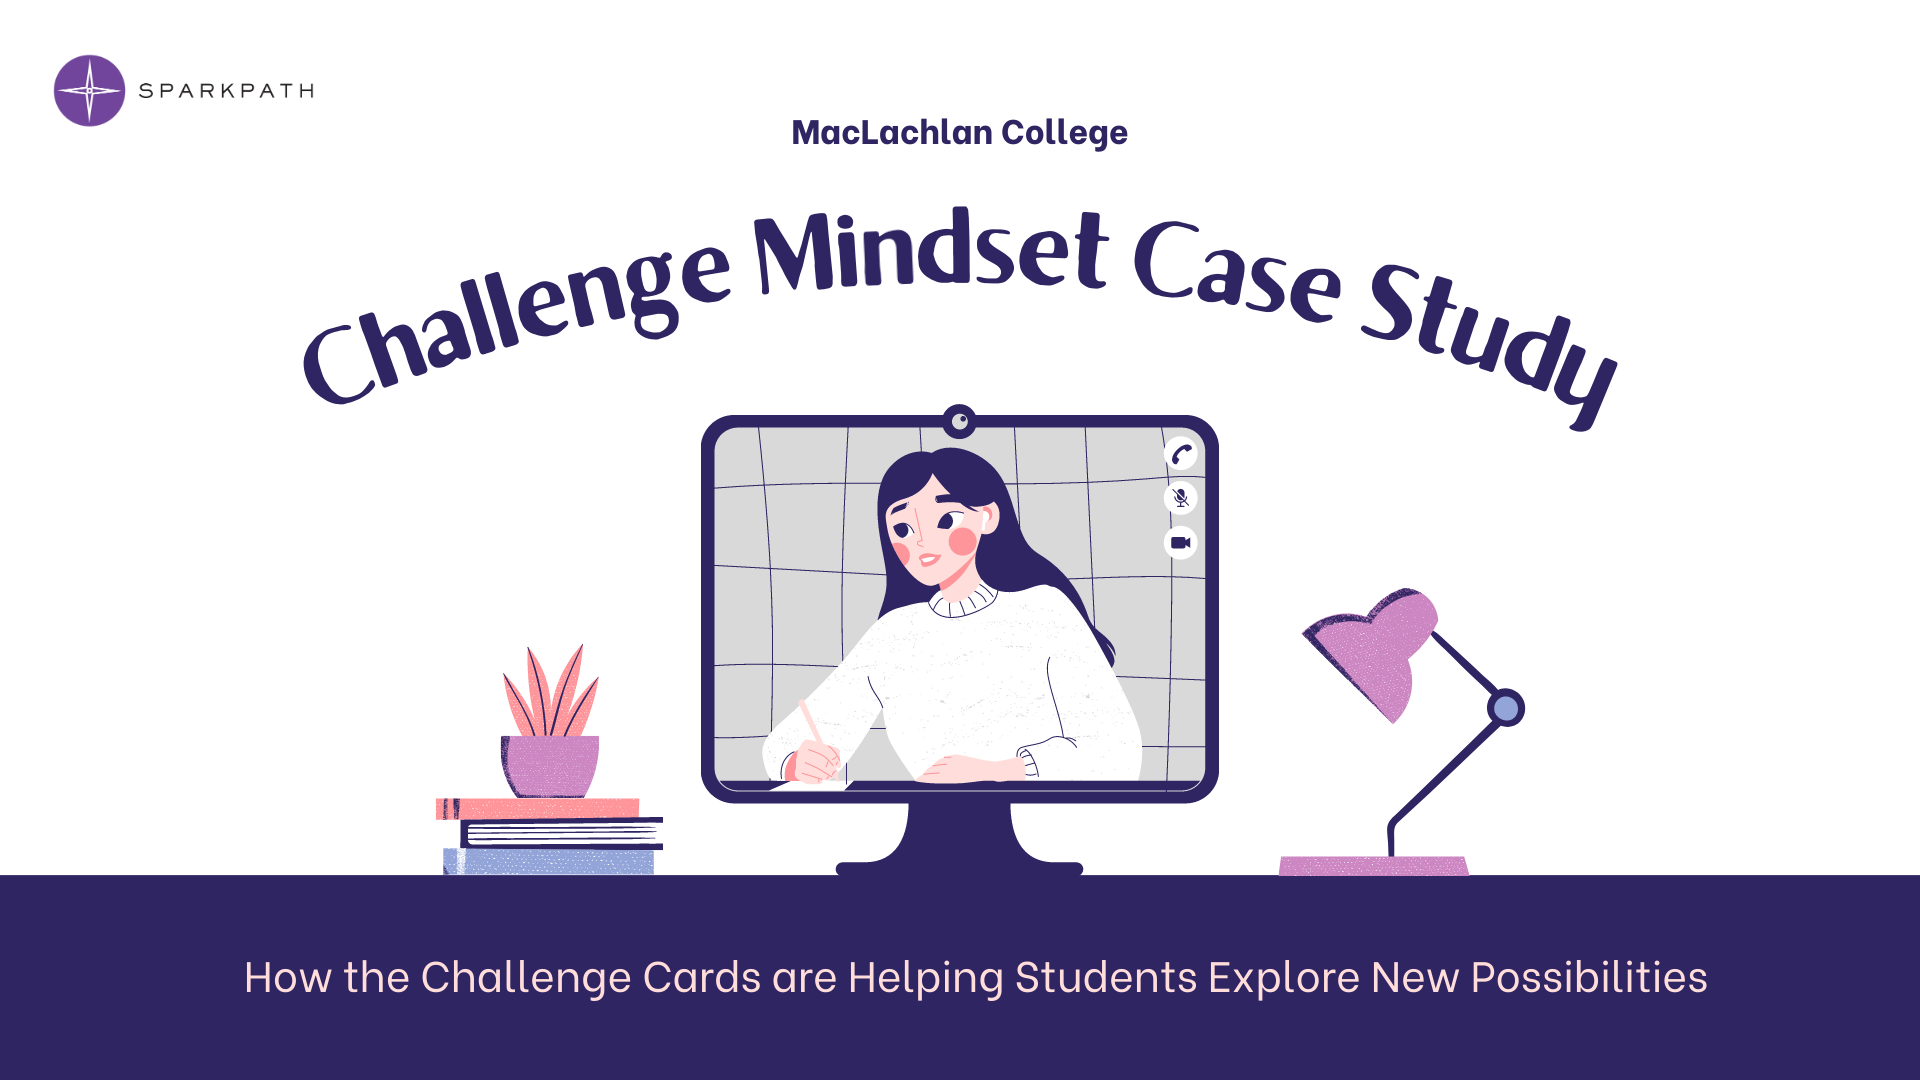 How the Challenge Cards are Helping Students Explore New Possibilities